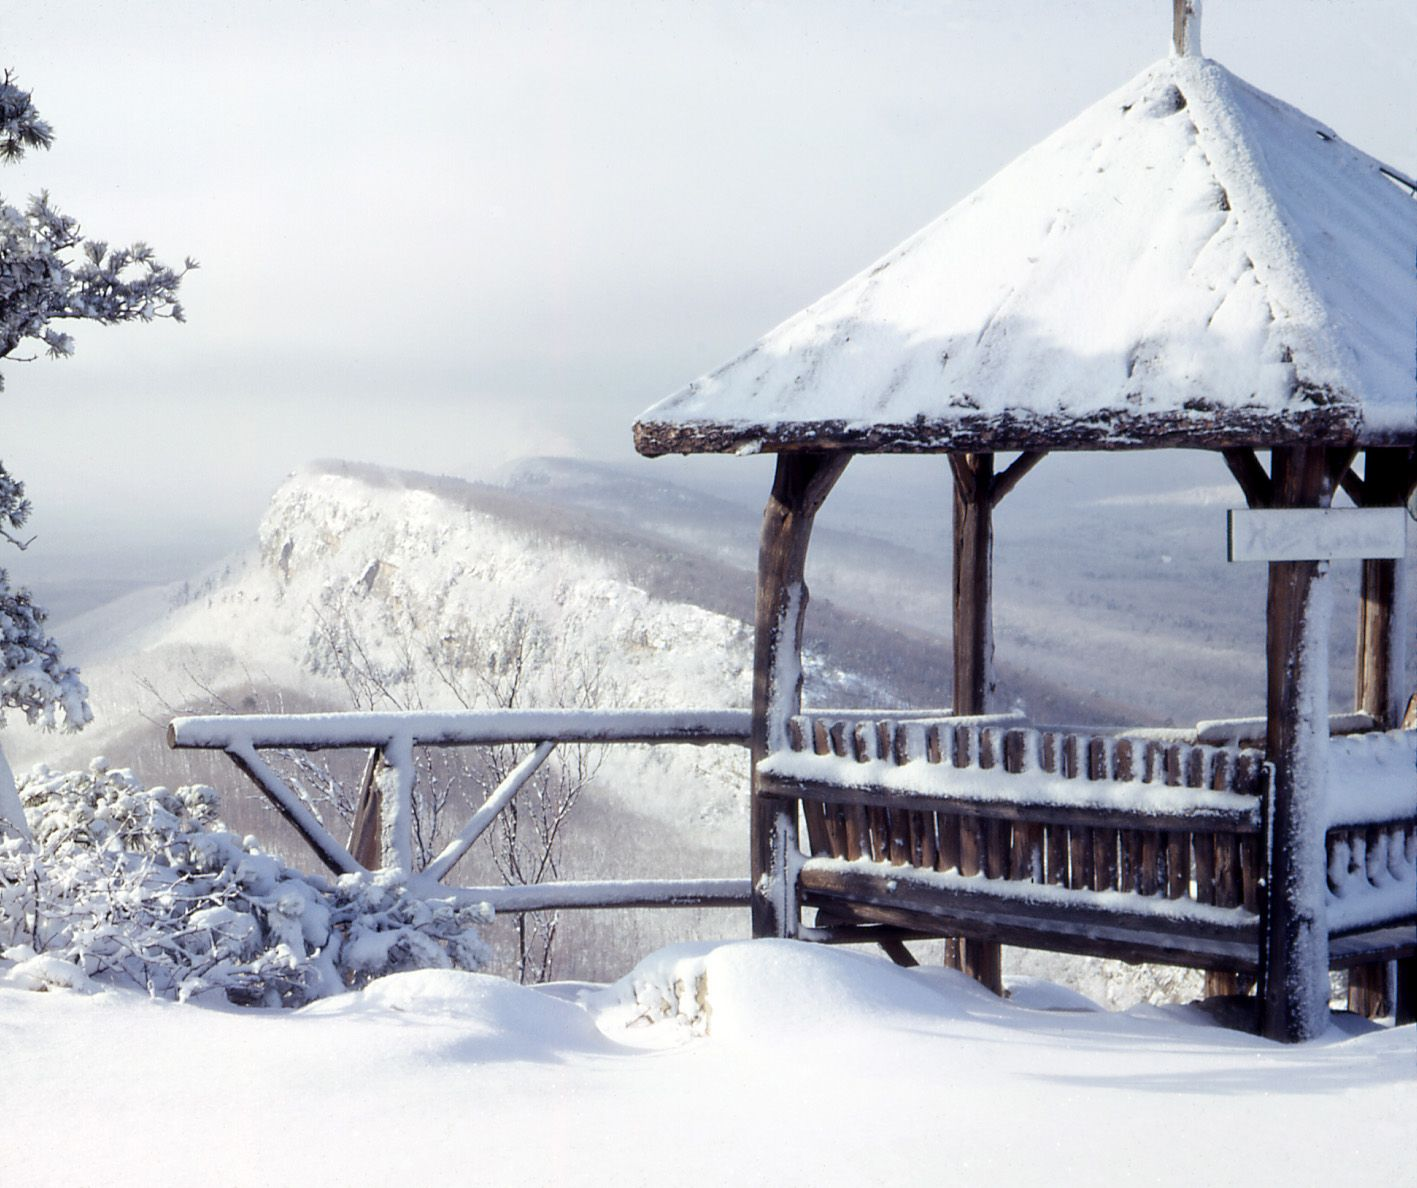 Snow covered gazebo in the winter at Mohonk overlooking the Trapps.